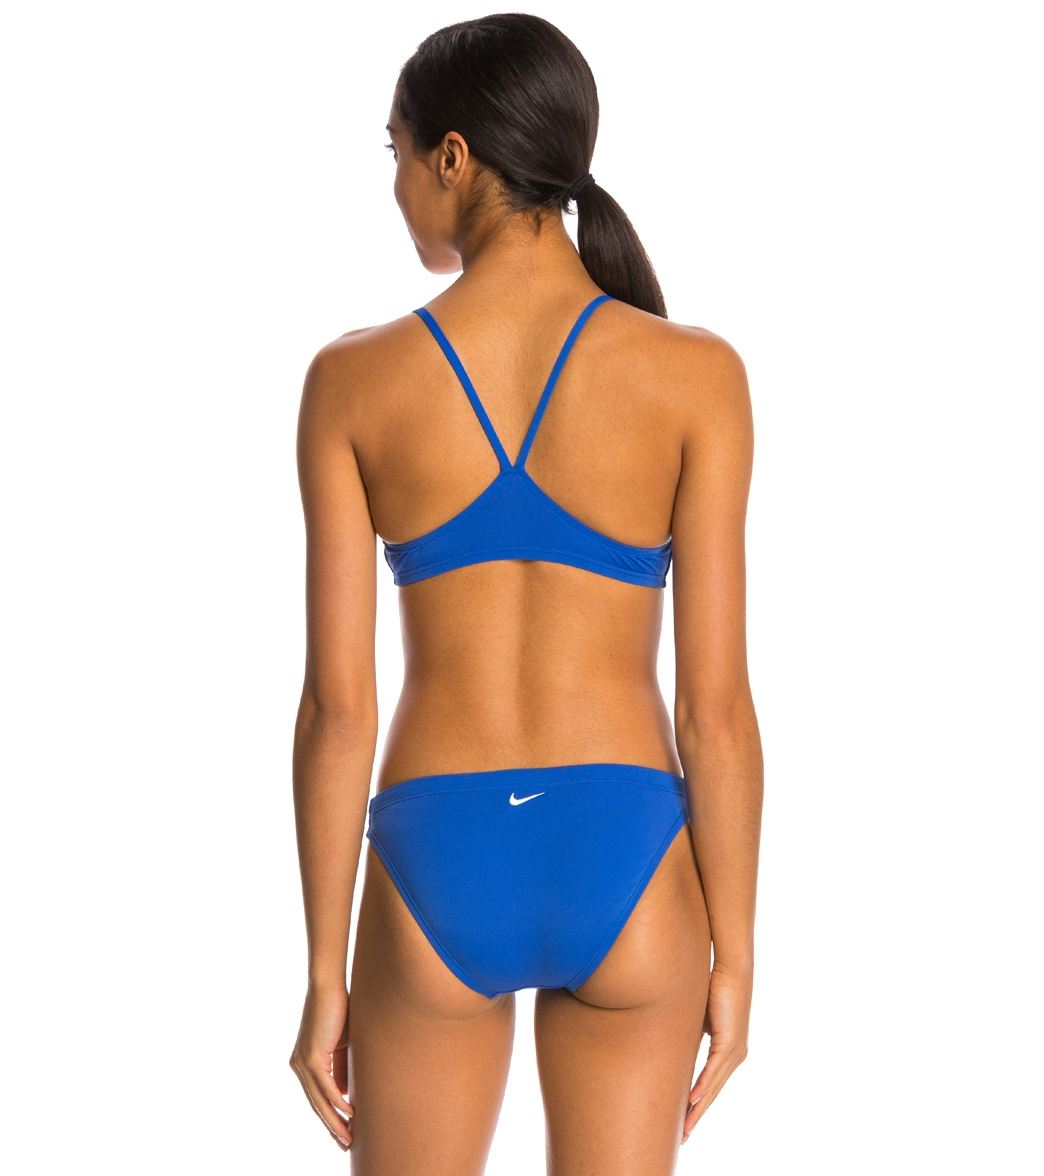 fc411e4ccaa Nike Swim Poly Core Solids Sport Two Piece Swimsuit Set at ...